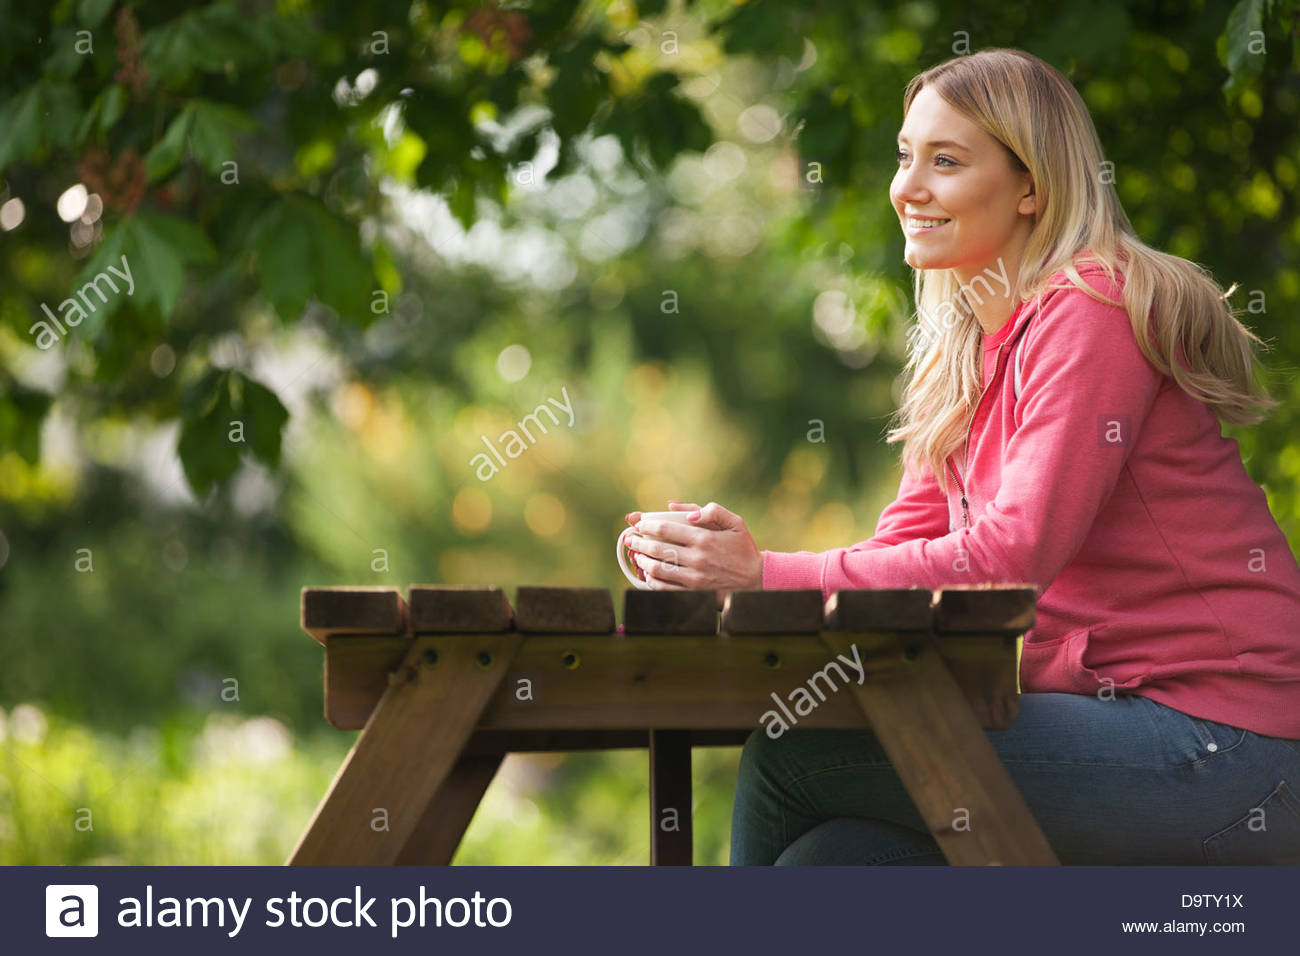 A young woman sitting at a garden bench drinking a hot beverage, close up - Stock Image